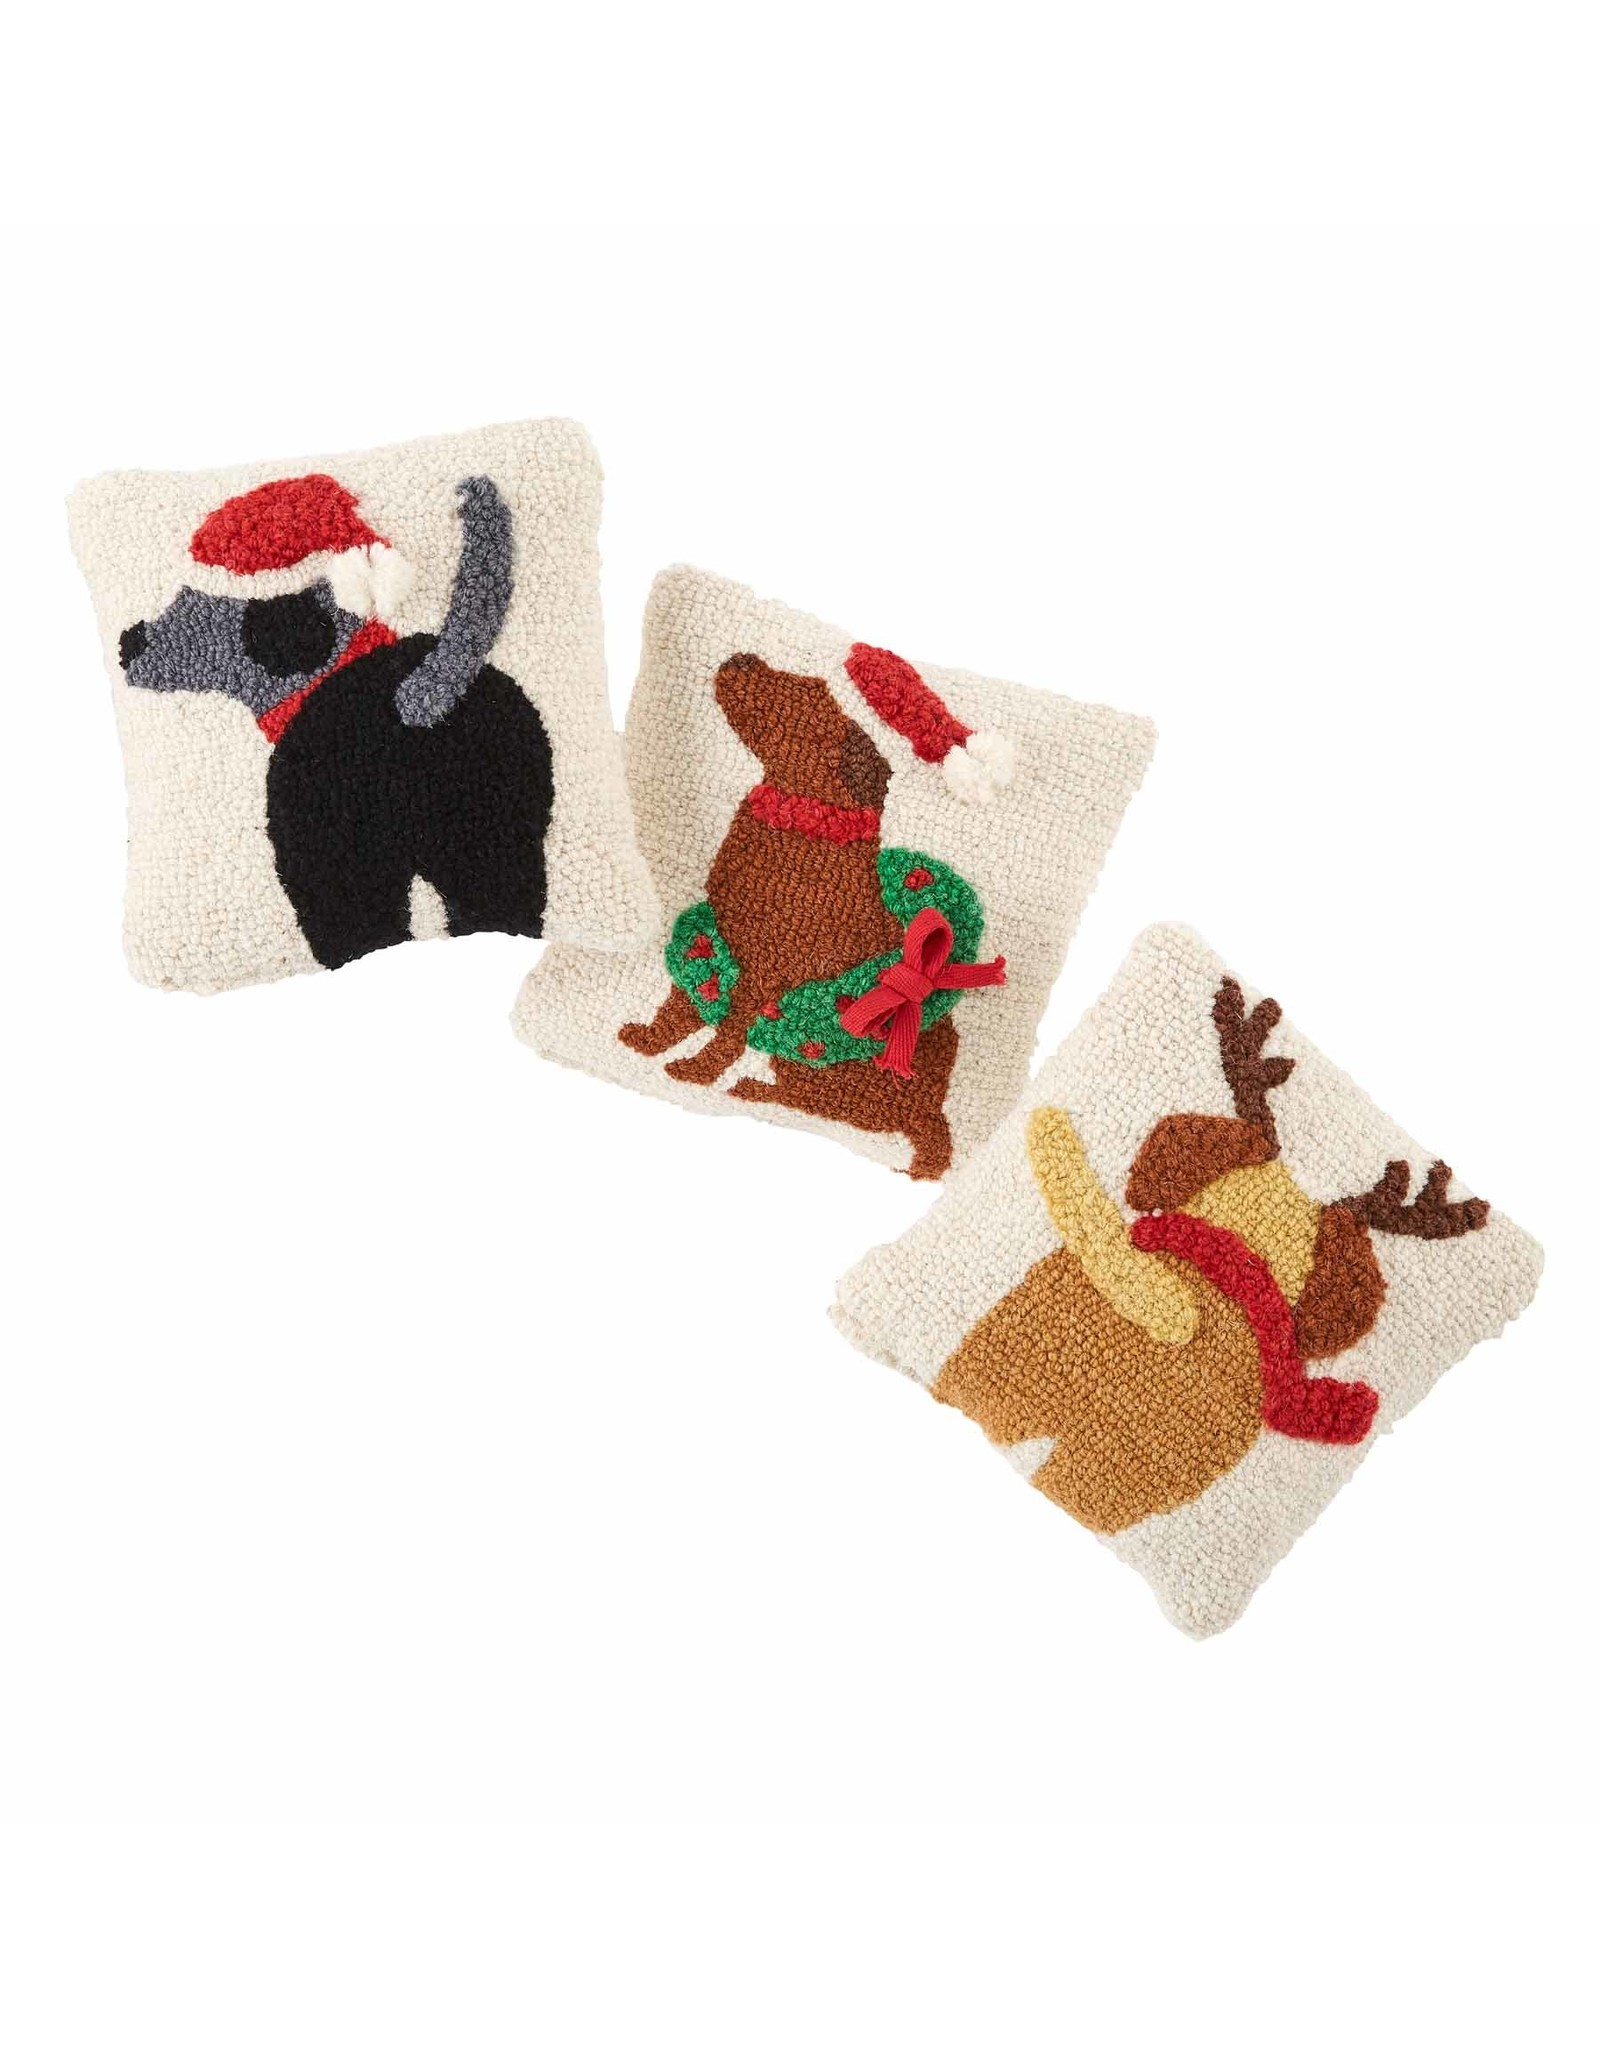 Santa Hat Black Dog Mini Hook Pillow